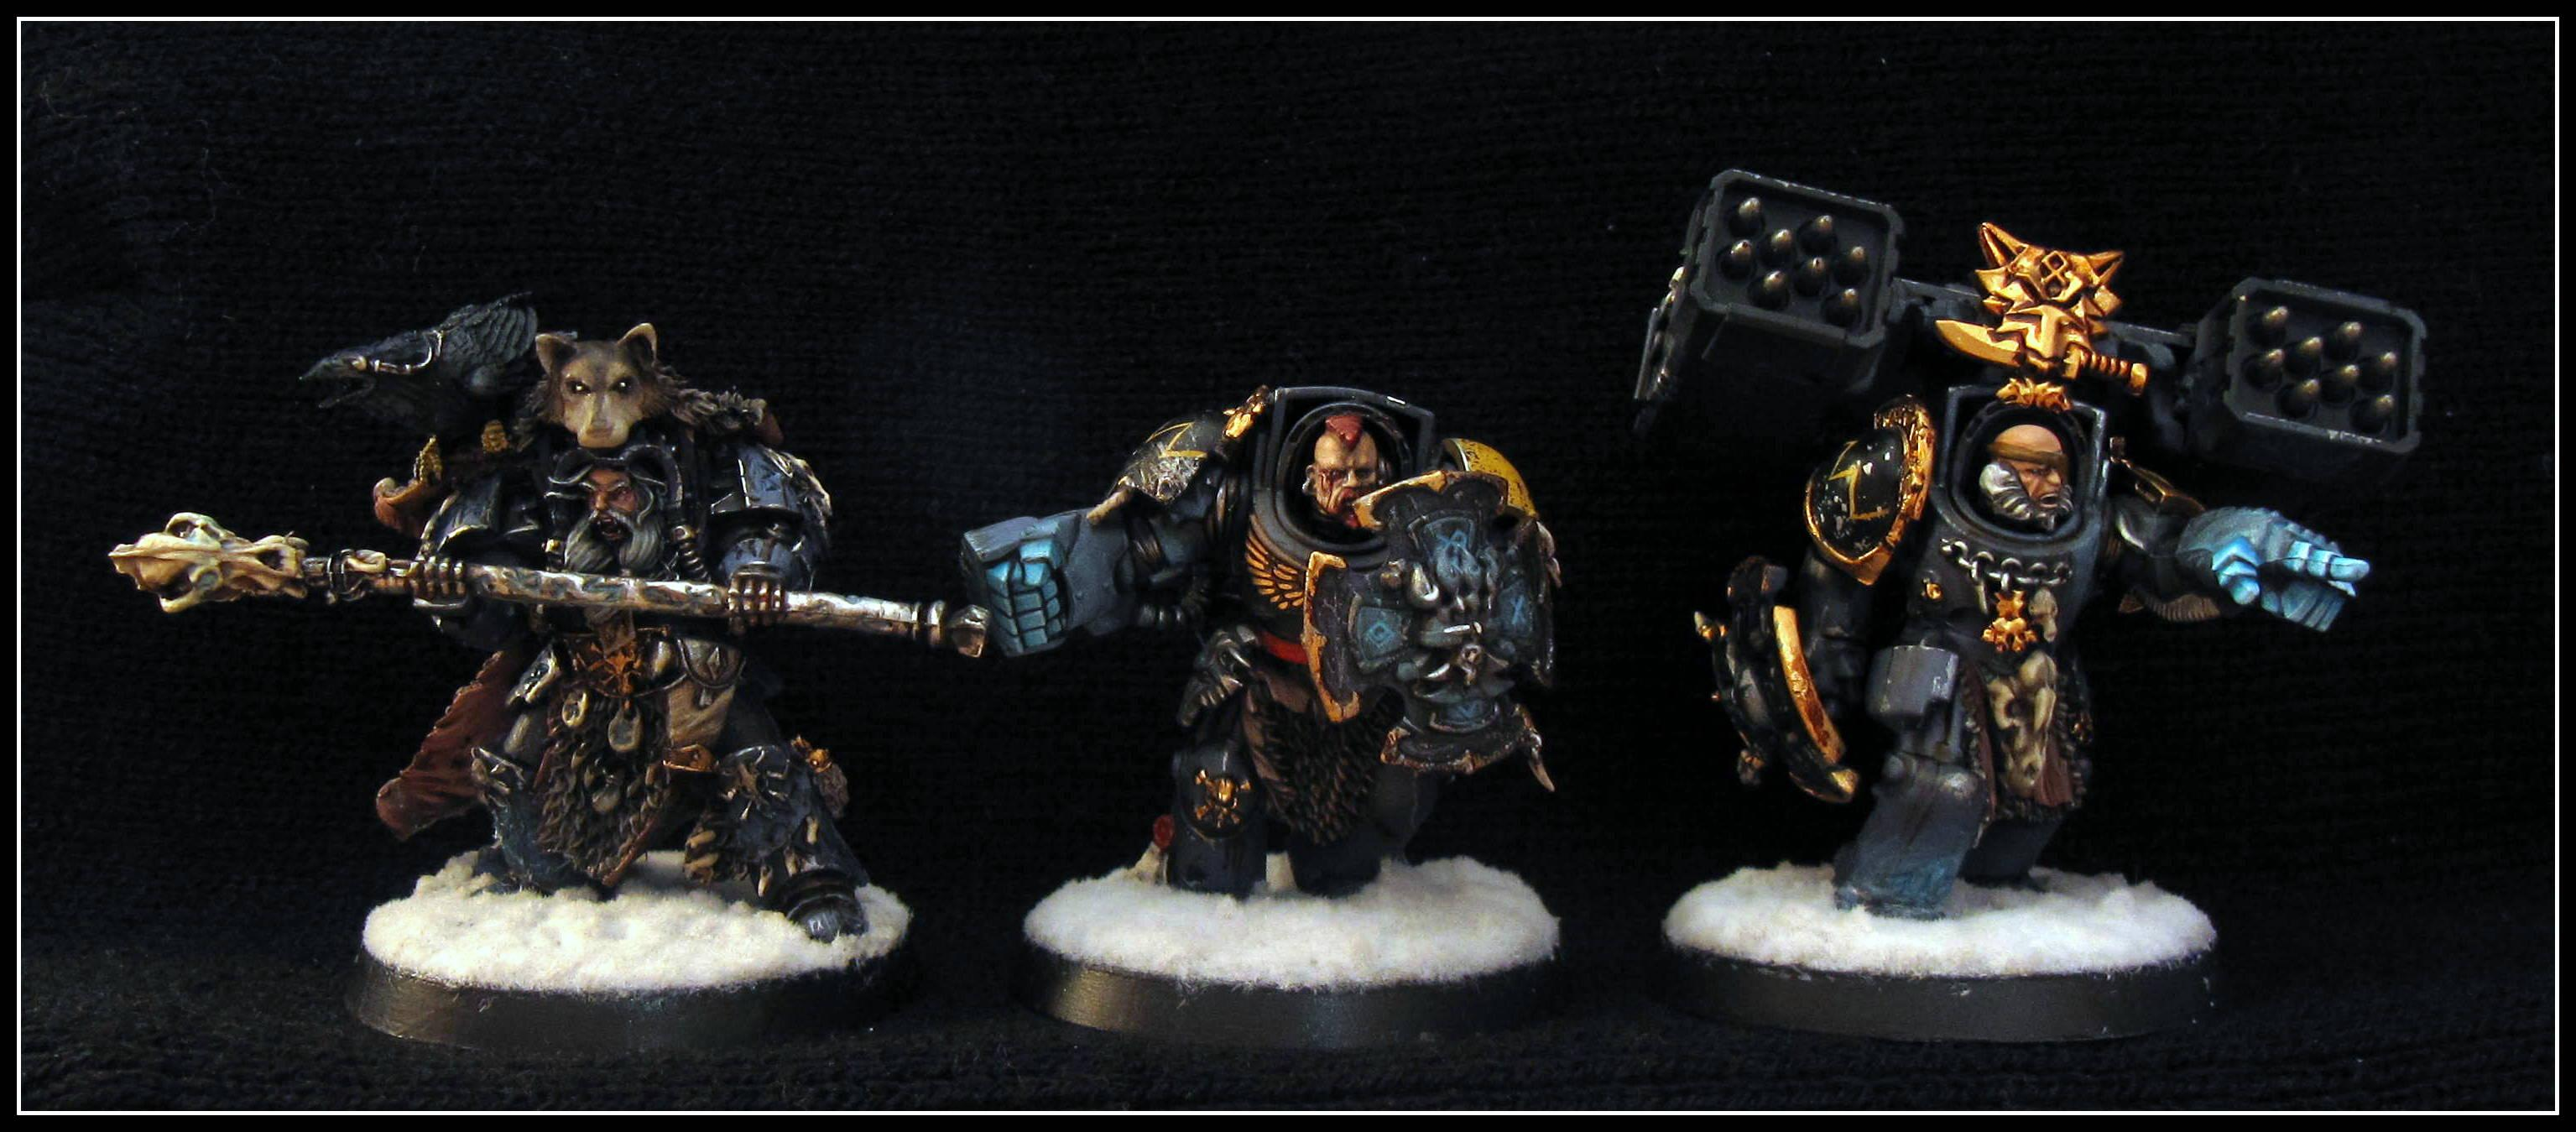 Battle Damage, Detail, Forge World, Glow, Power Weapon, Skin, Snow, Space Marines, Space Wolves, Teeth, Terminator Armor, Warhammer 40,000, Weathered